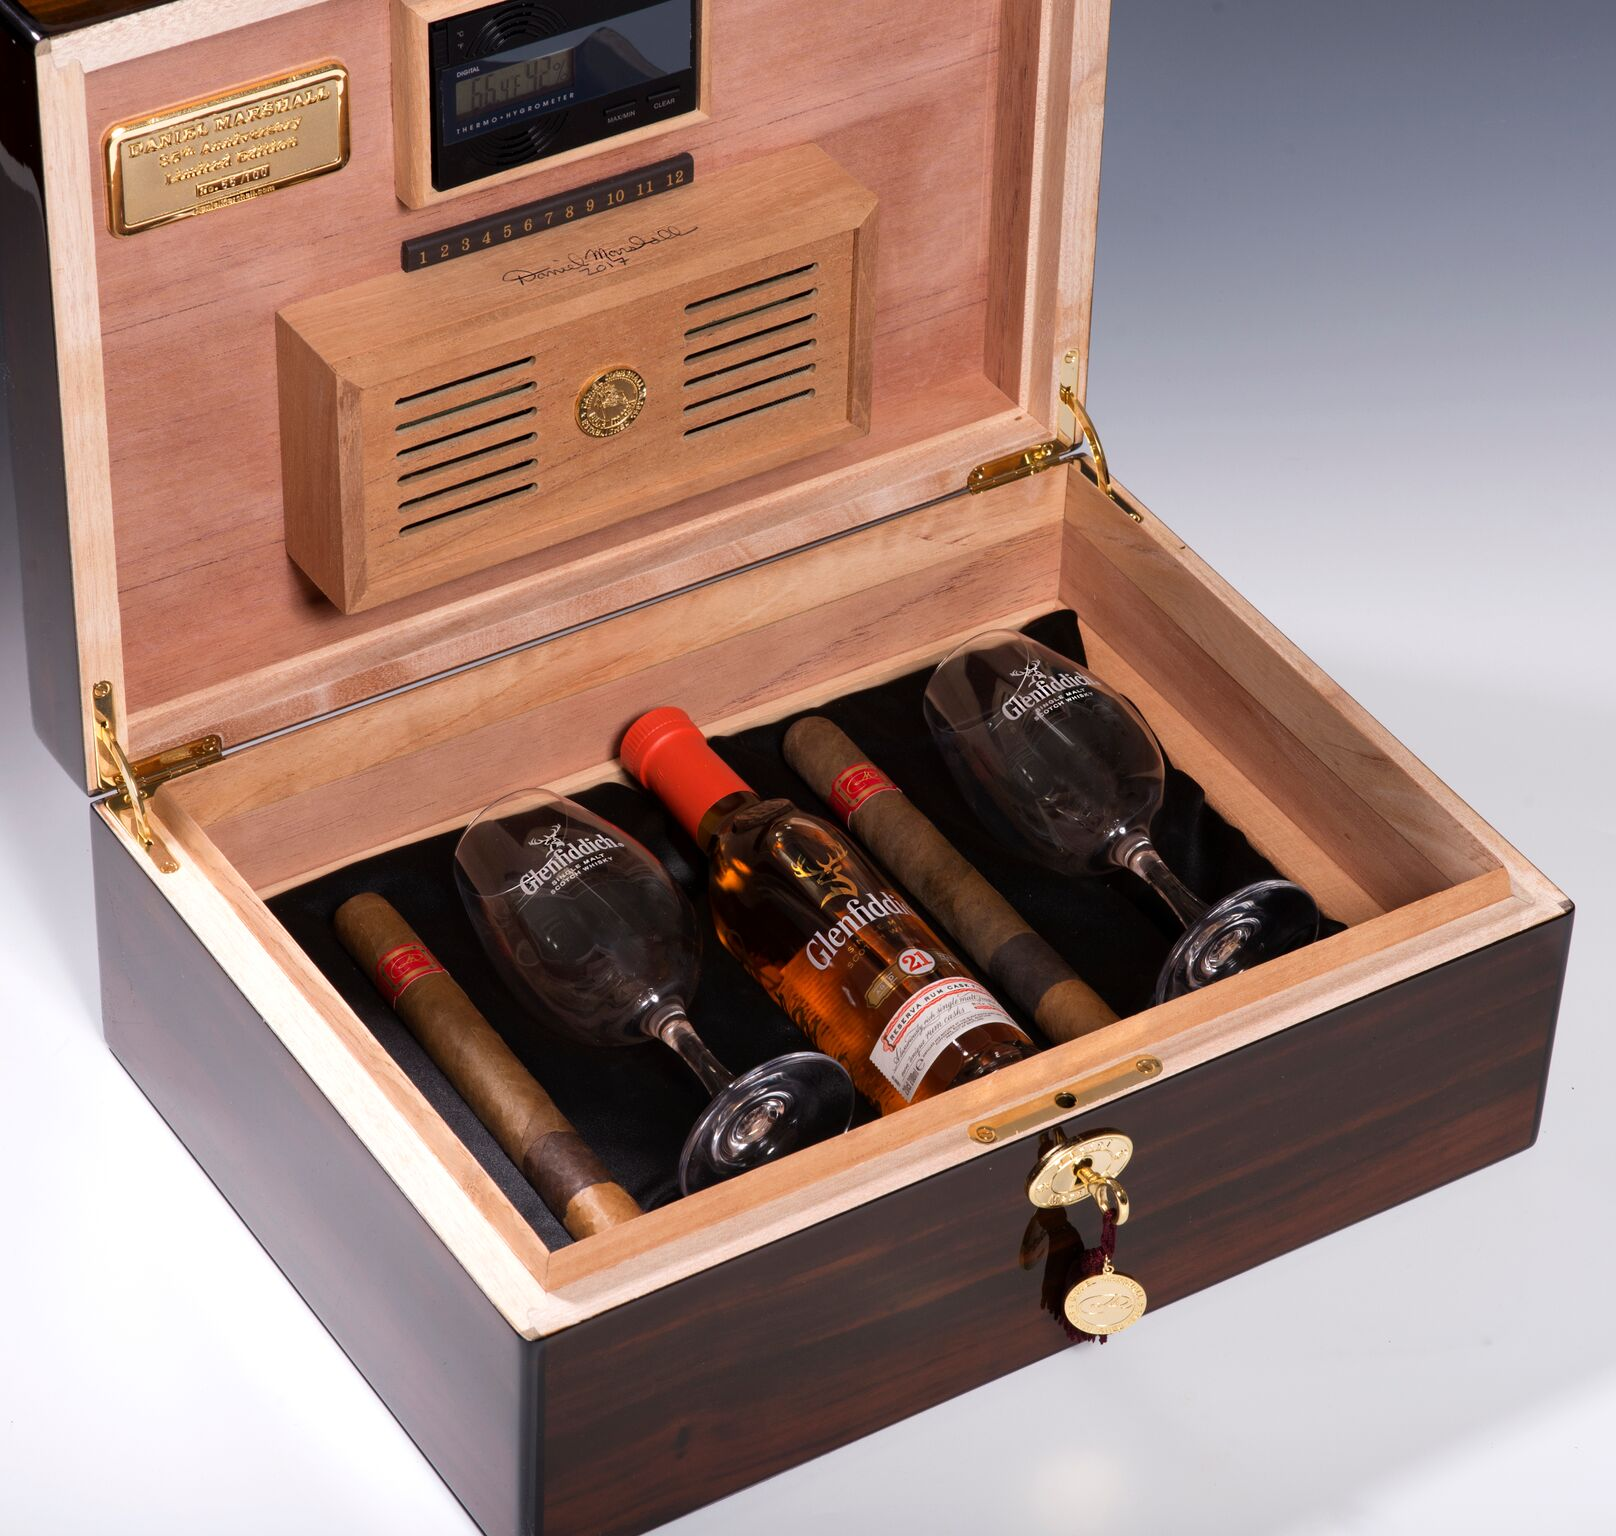 Daniel Marshall 35th Anniversary Humidor - Open